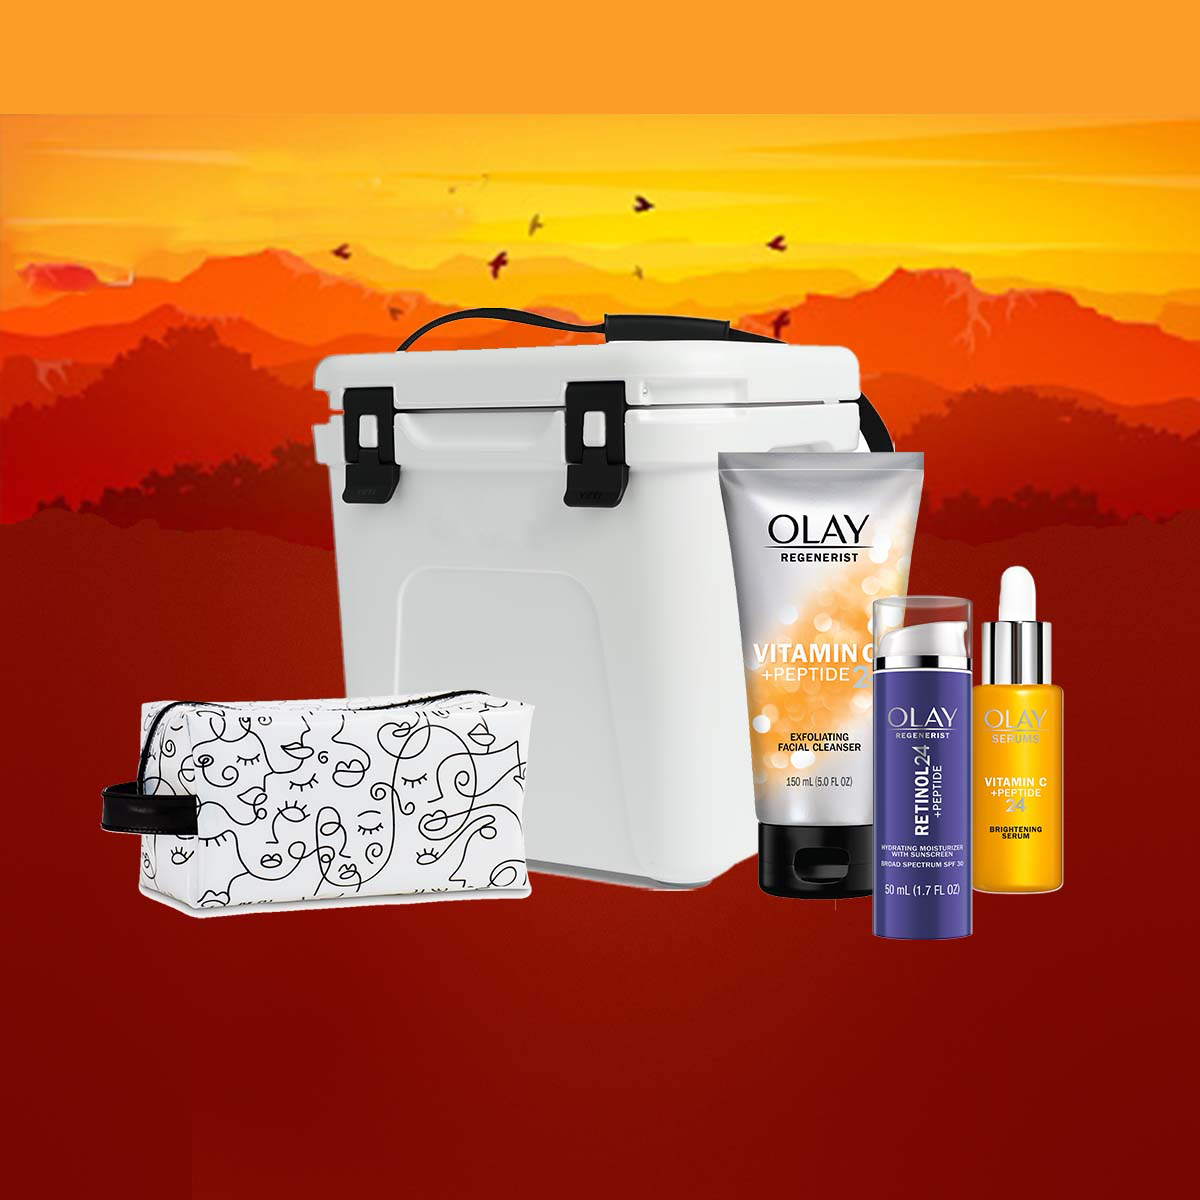 Sign up for a chance to win this Outdoor Adventure Kit & newest Olay Products for a prize value of over $280.